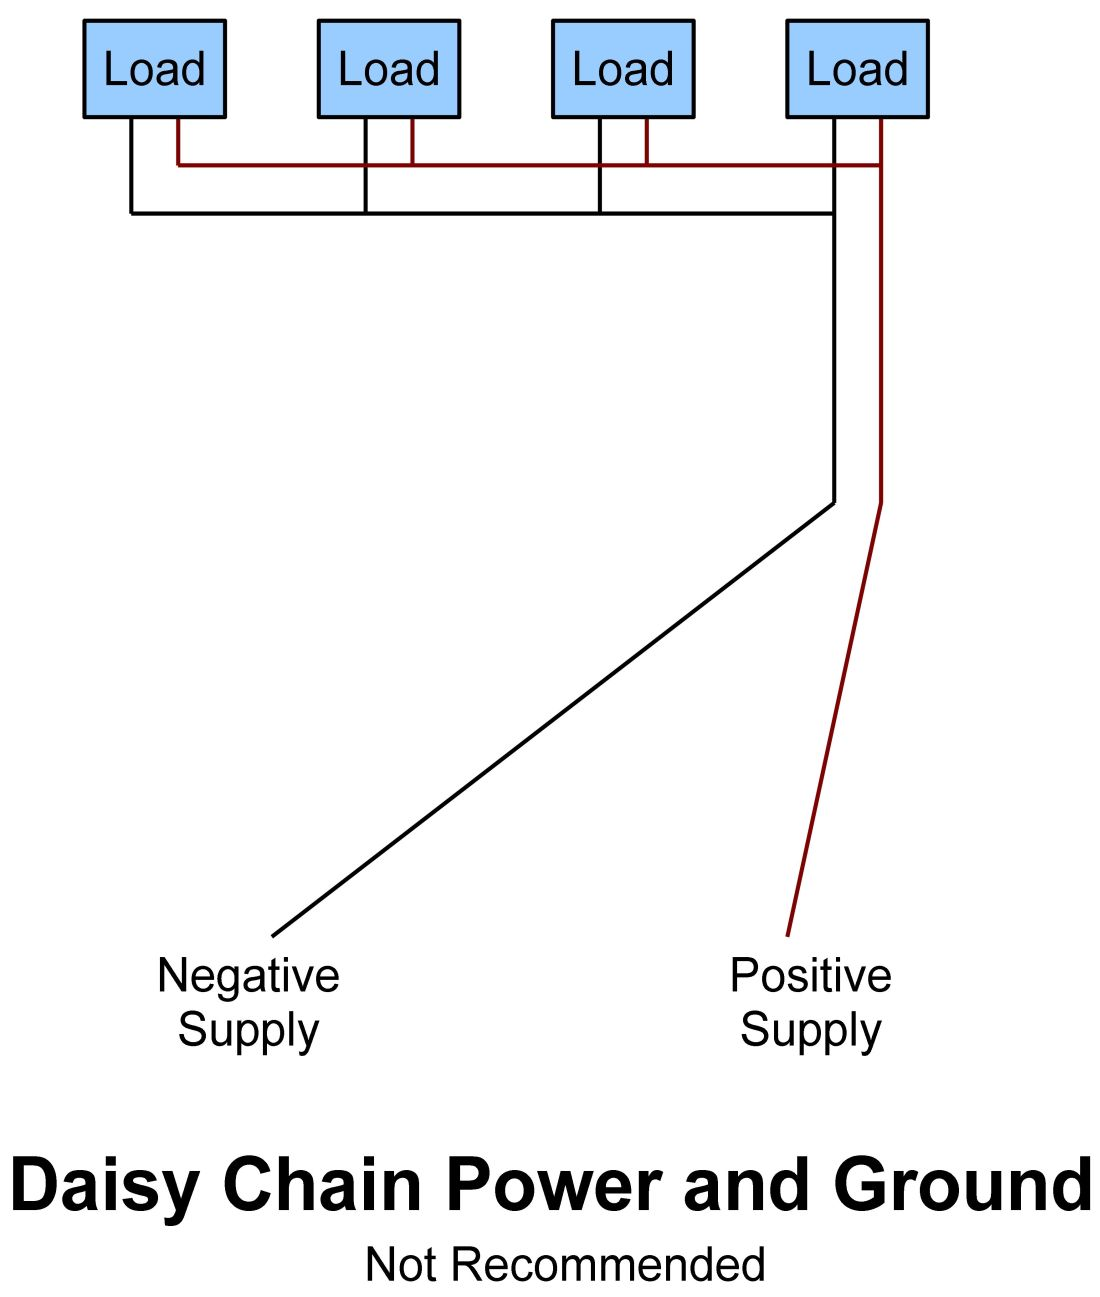 067 DaisyChain Ground?resized665%2C7846ssld1 daisy chain wiring diagram daisy chain electrical wiring diagram daisy chain electrical wiring diagram at soozxer.org